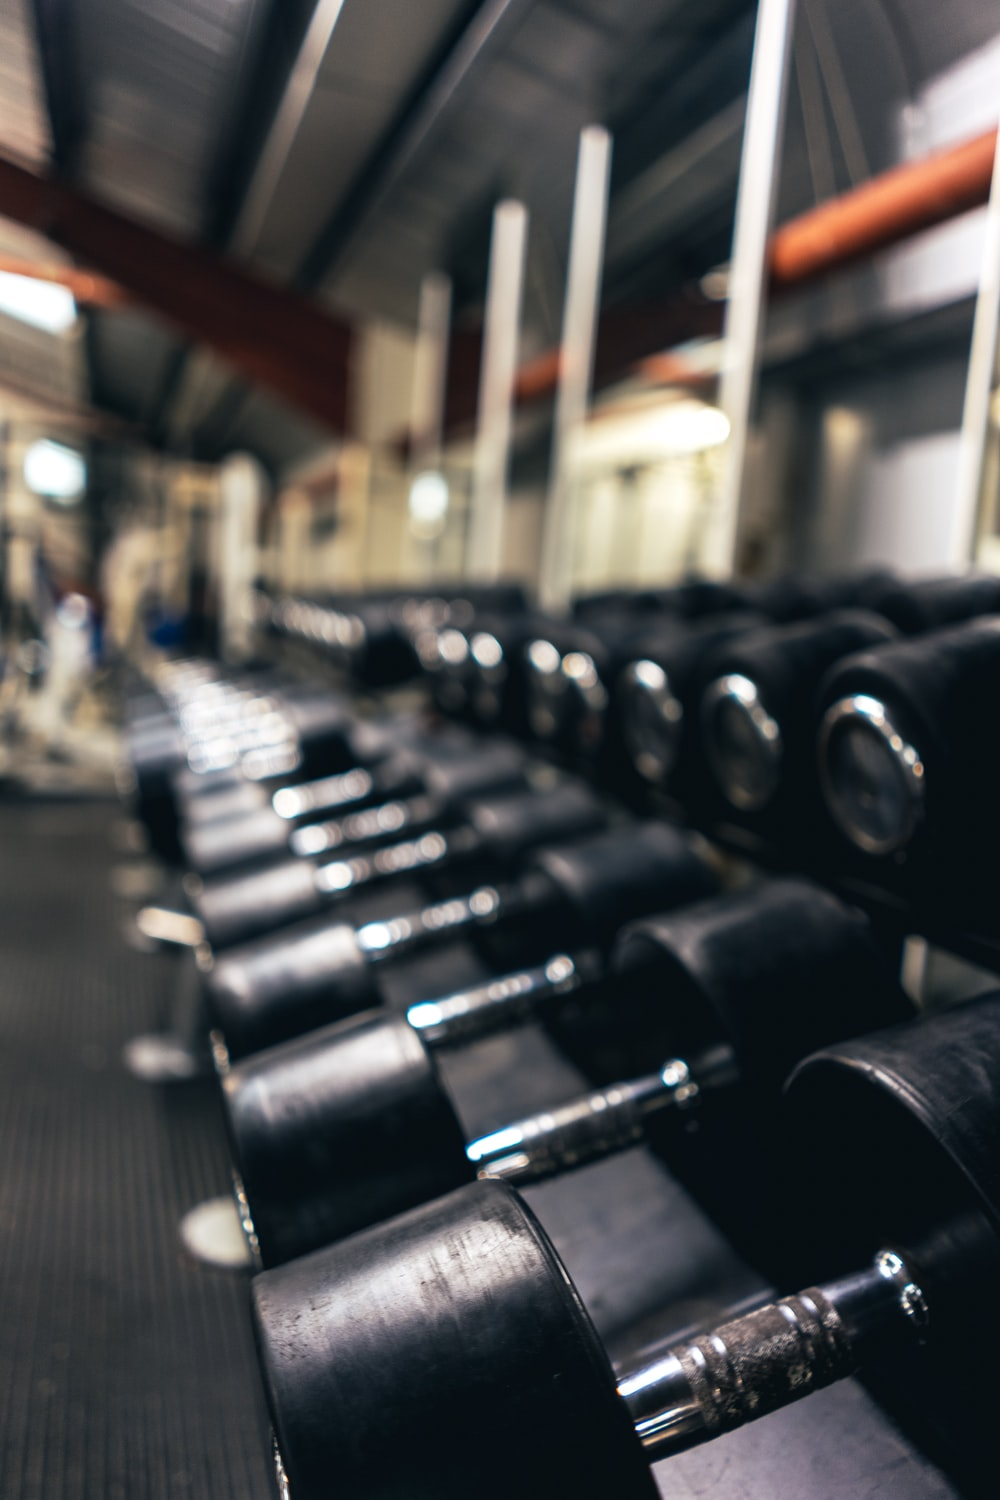 What Are The Best Workouts At The Gym?